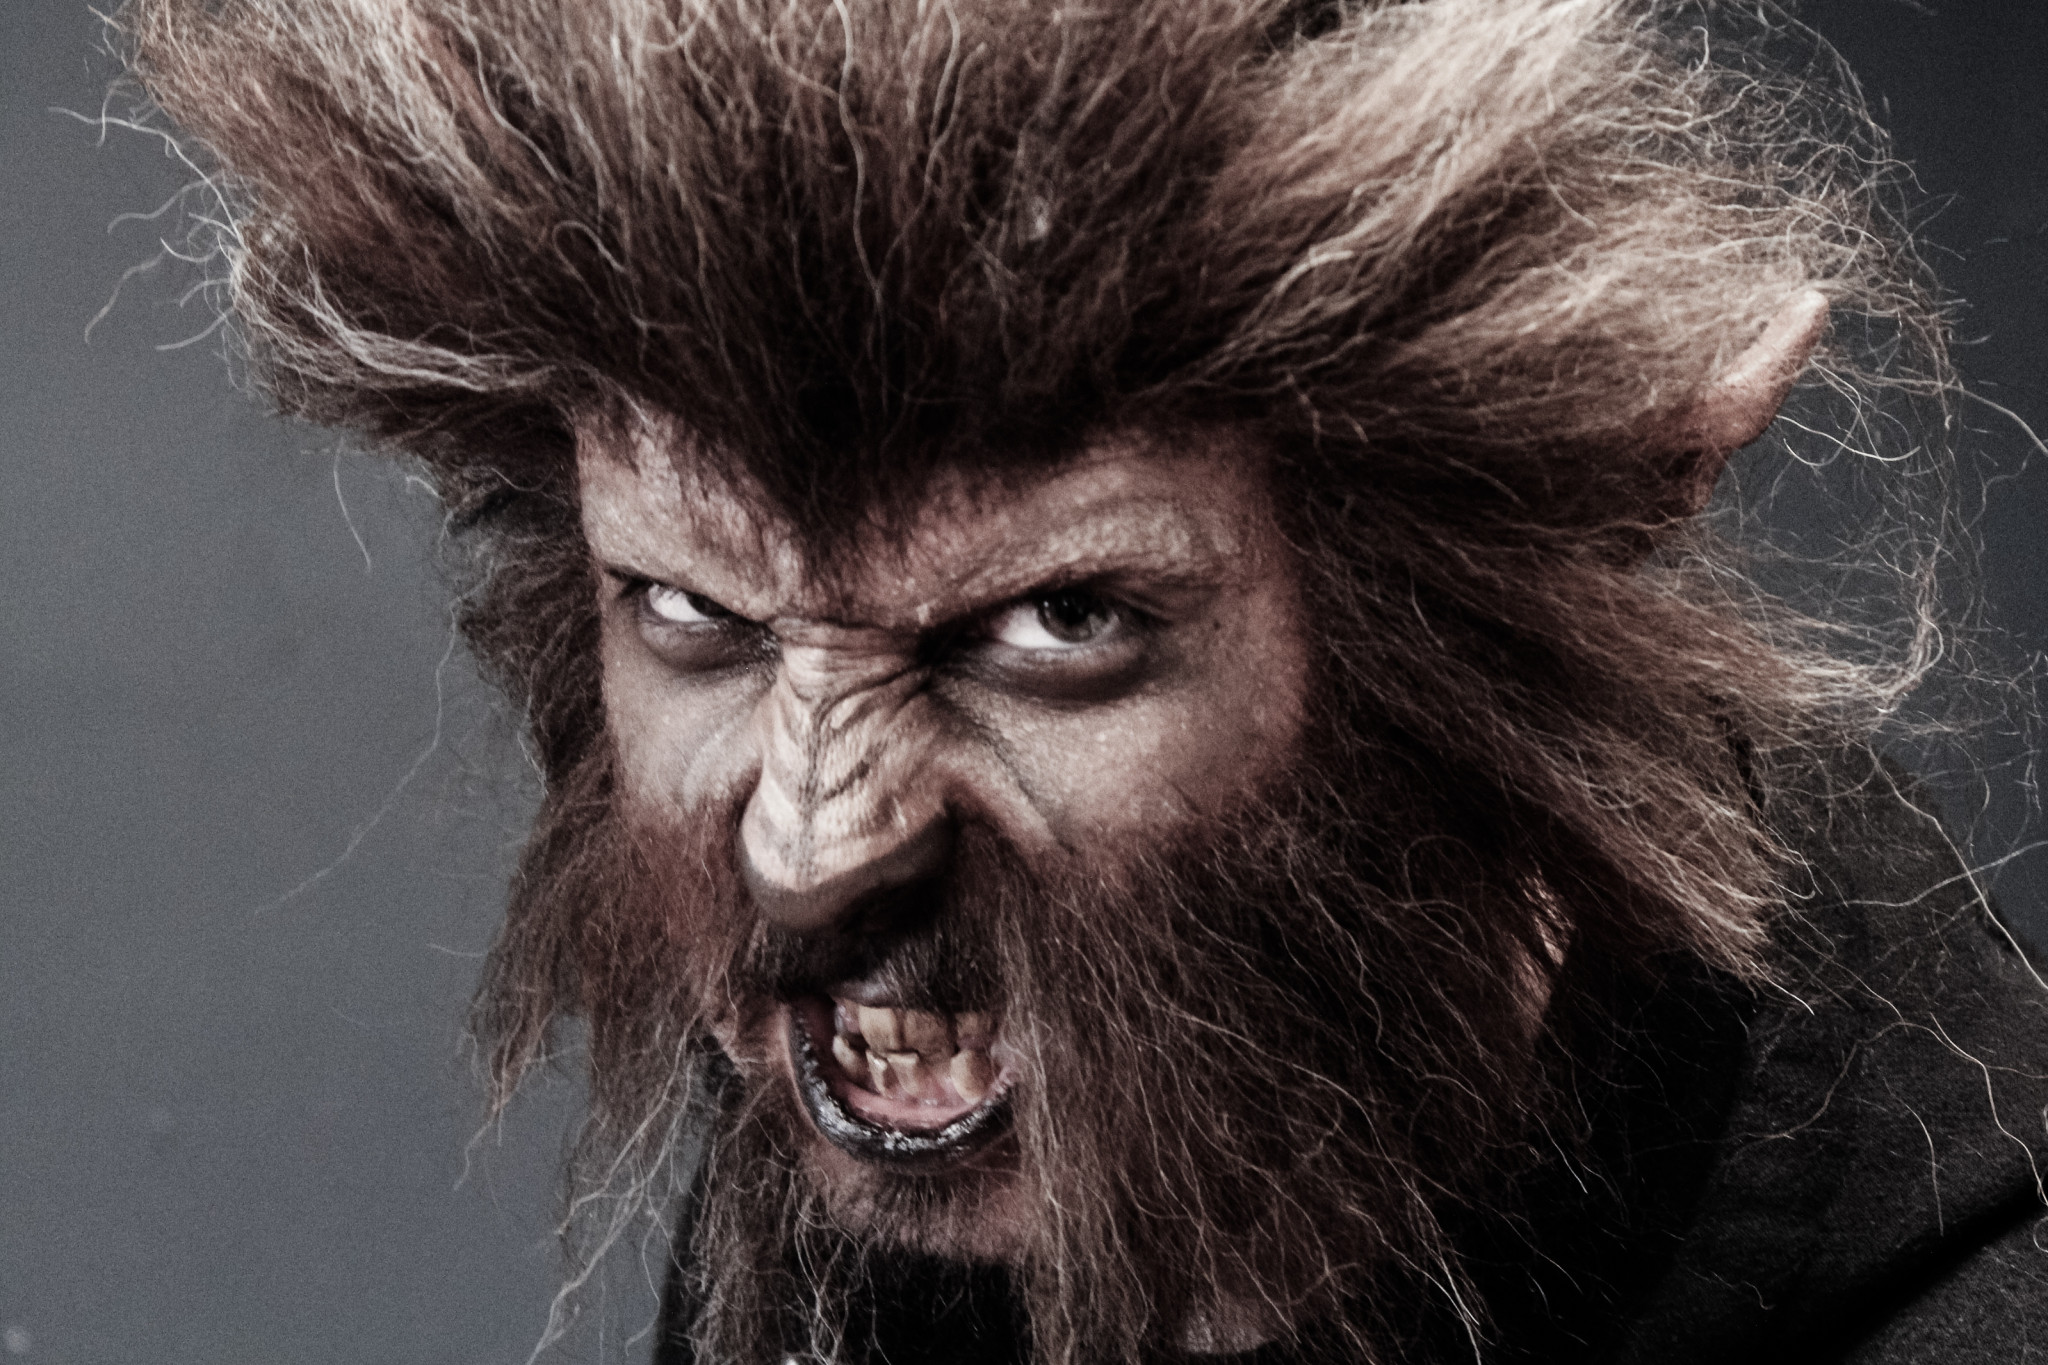 special effects & props werewolf